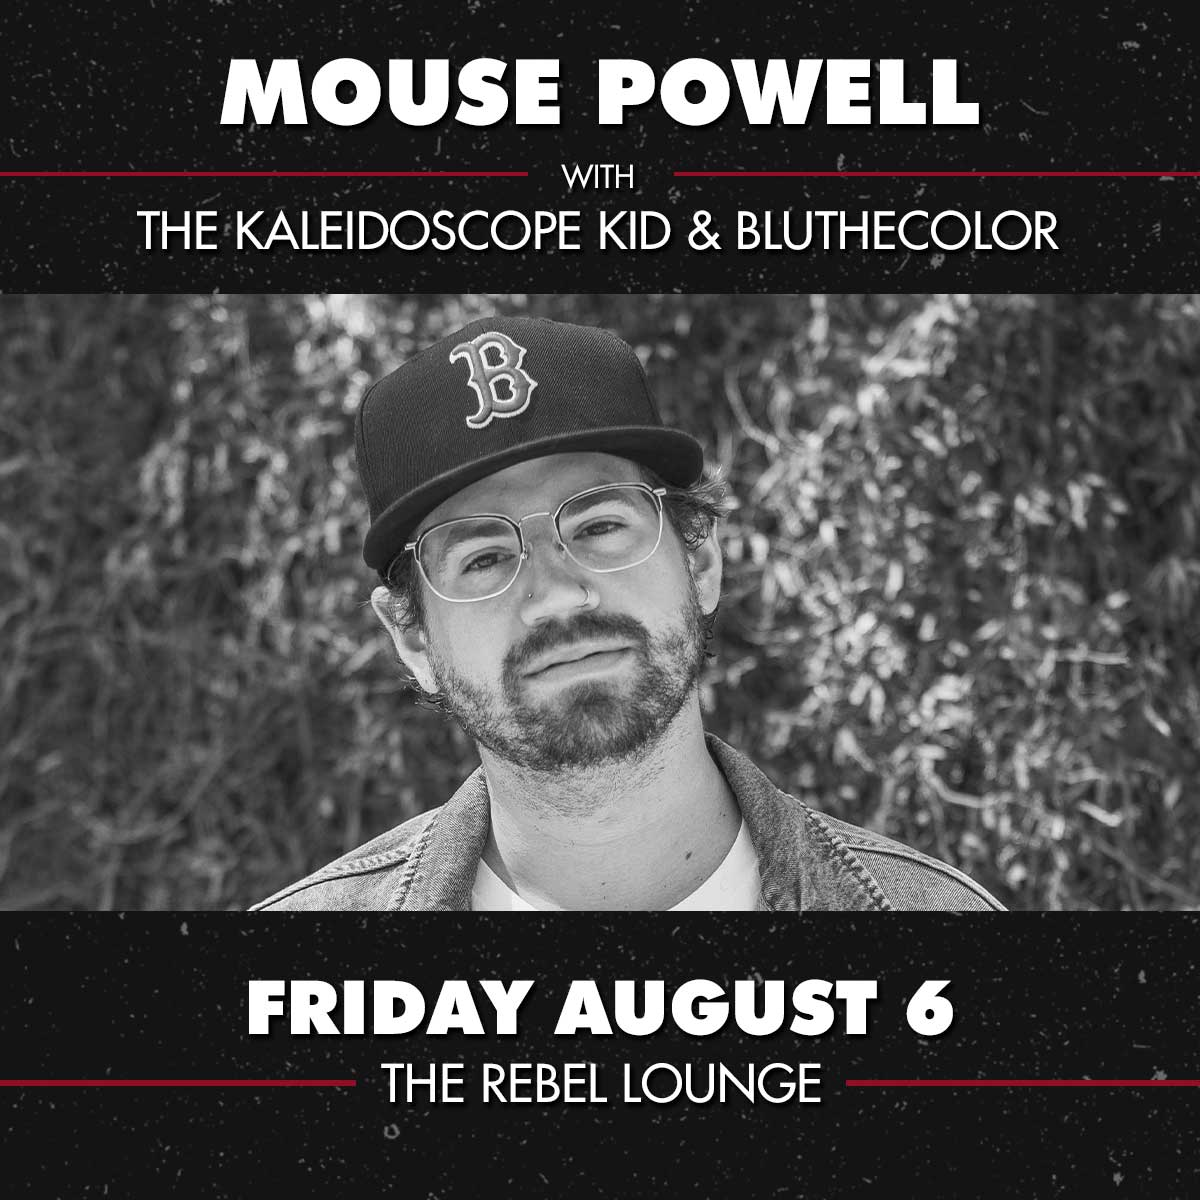 MOUSE POWELL: